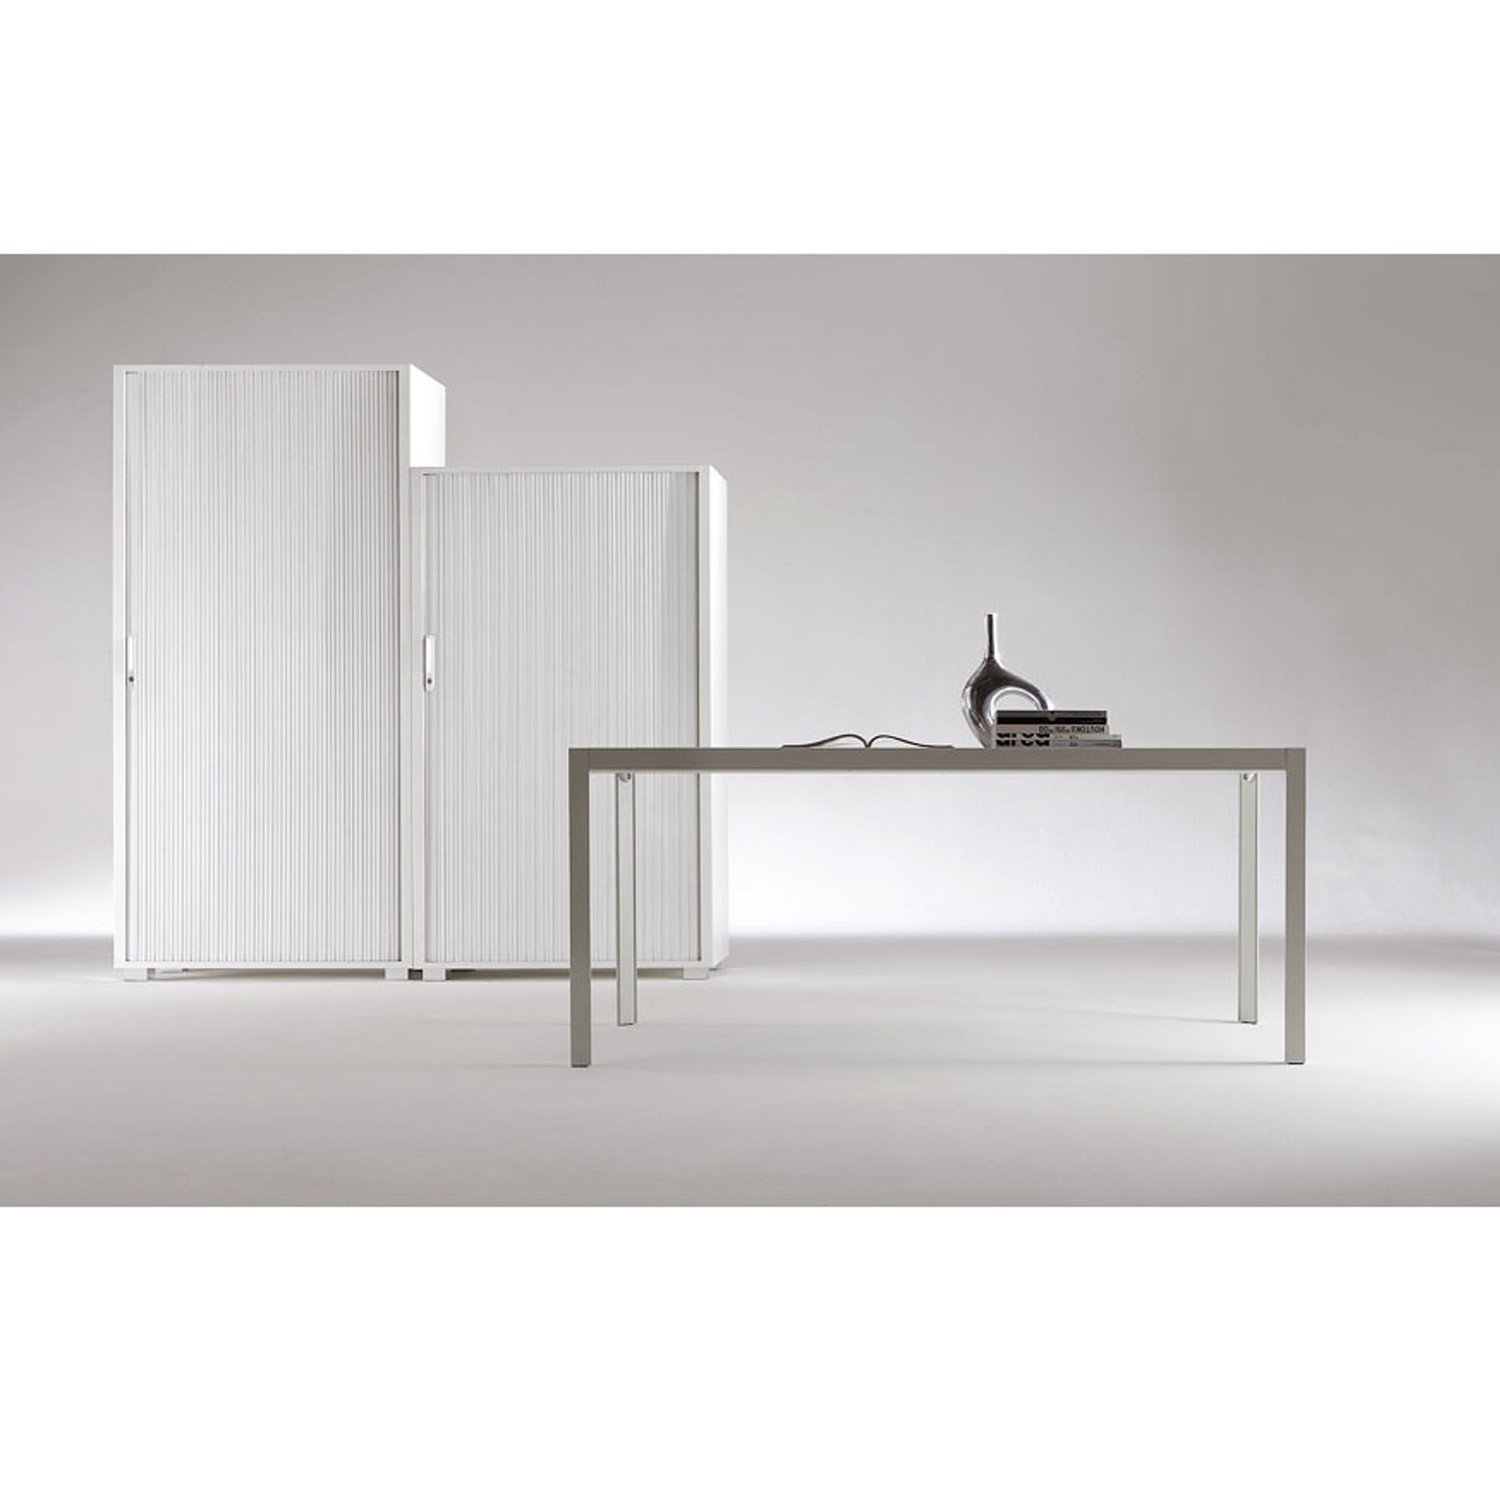 Primo Tambour Cabinets provide unrestricted access to the whole storage space